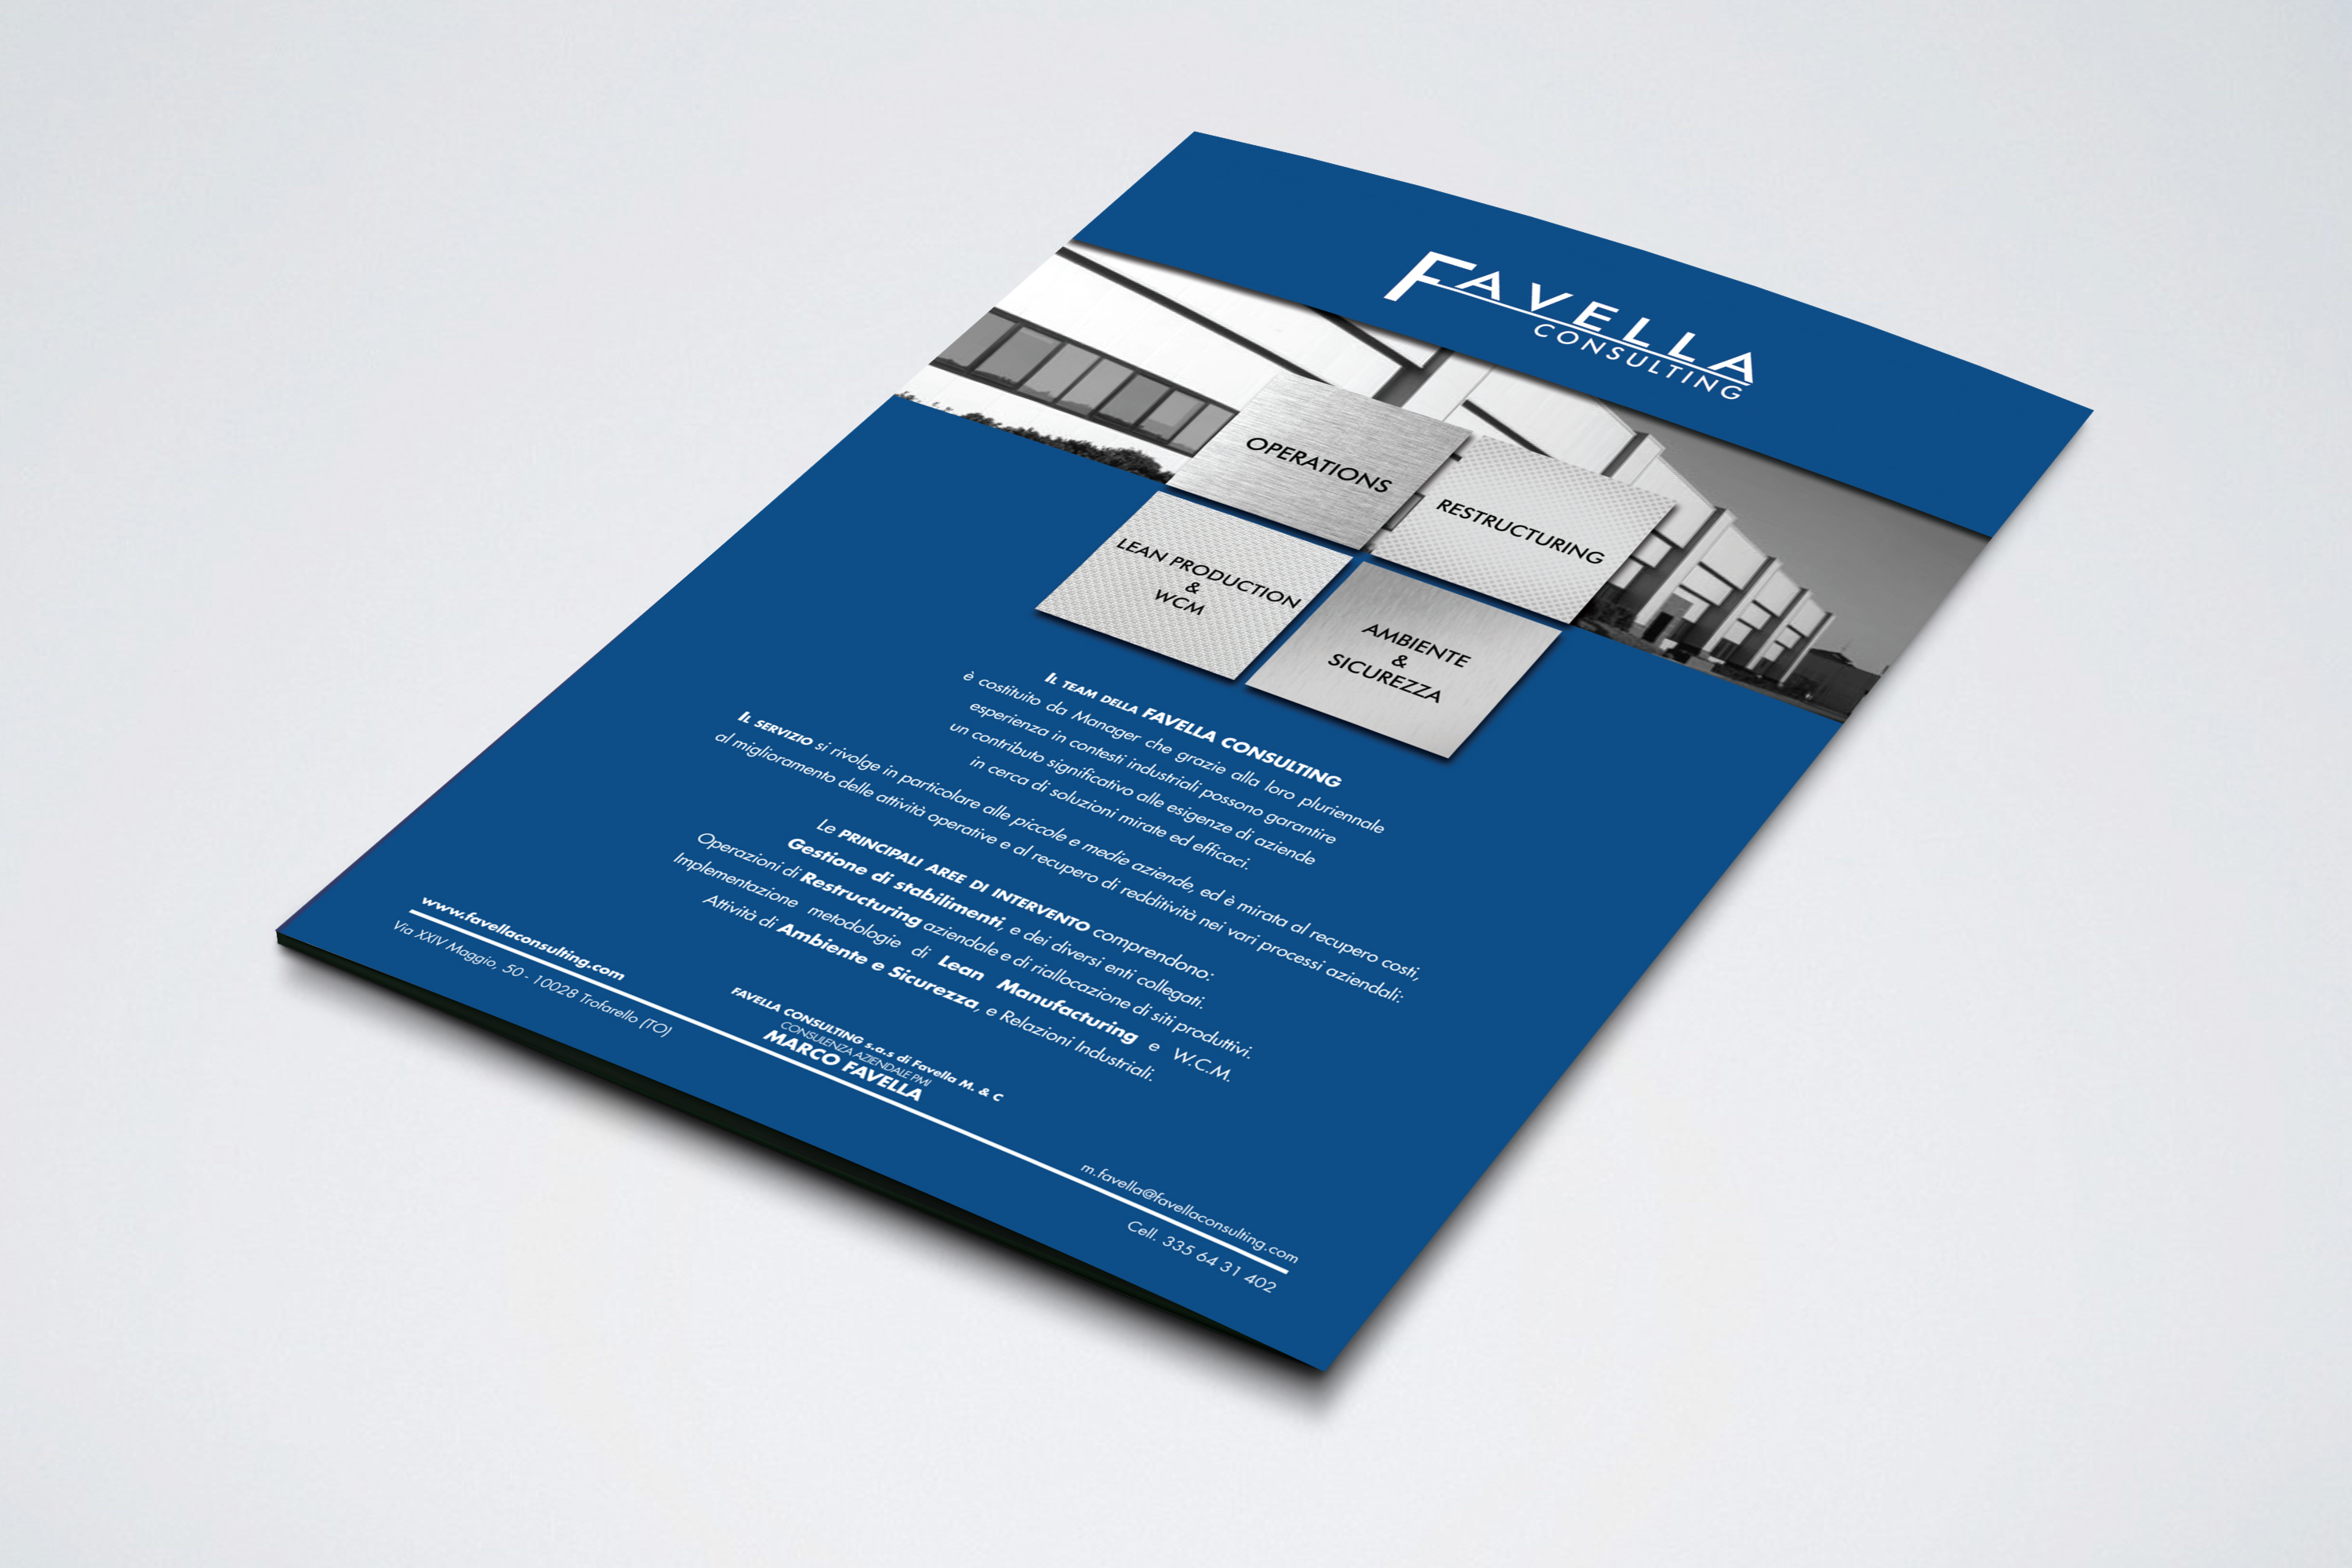 Brochure Favella Consulting realizzato da Alice Bottino Visual Designer